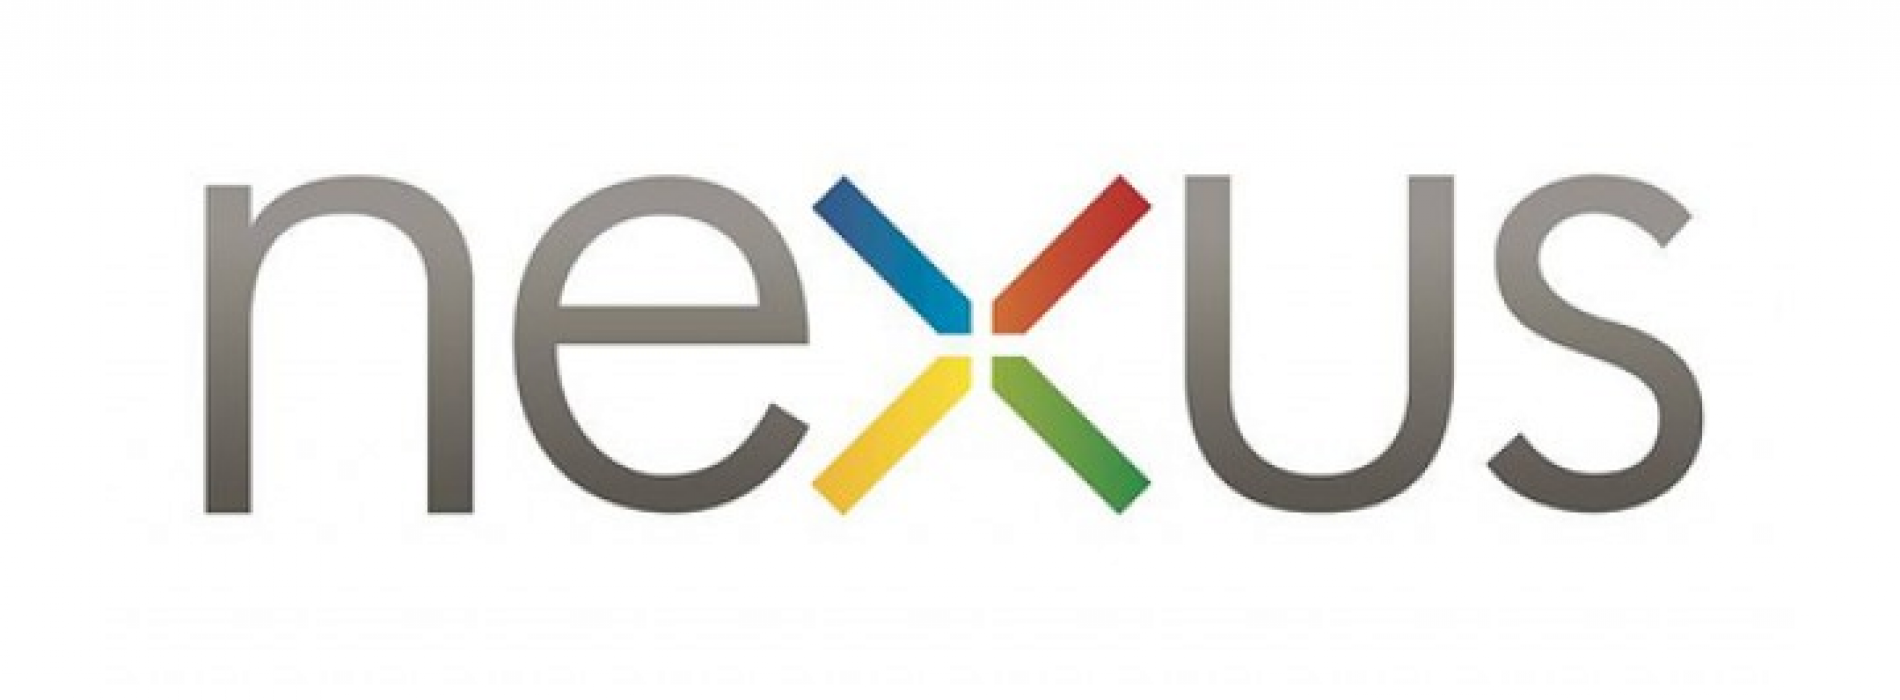 Alleged Galaxy Nexus successor details emerge